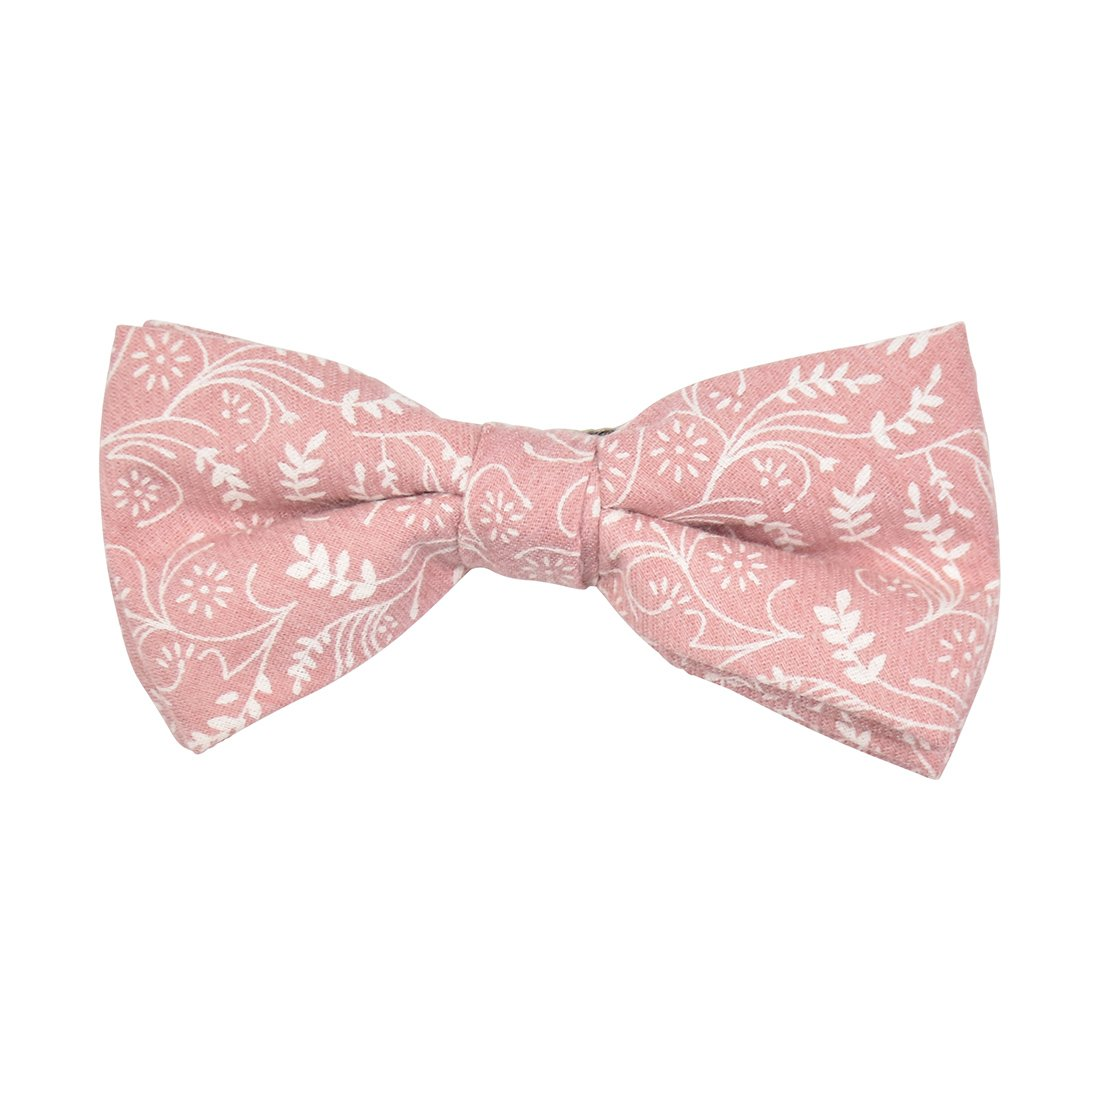 Floral Cotton Bow Tie with Metal Clip-Pink